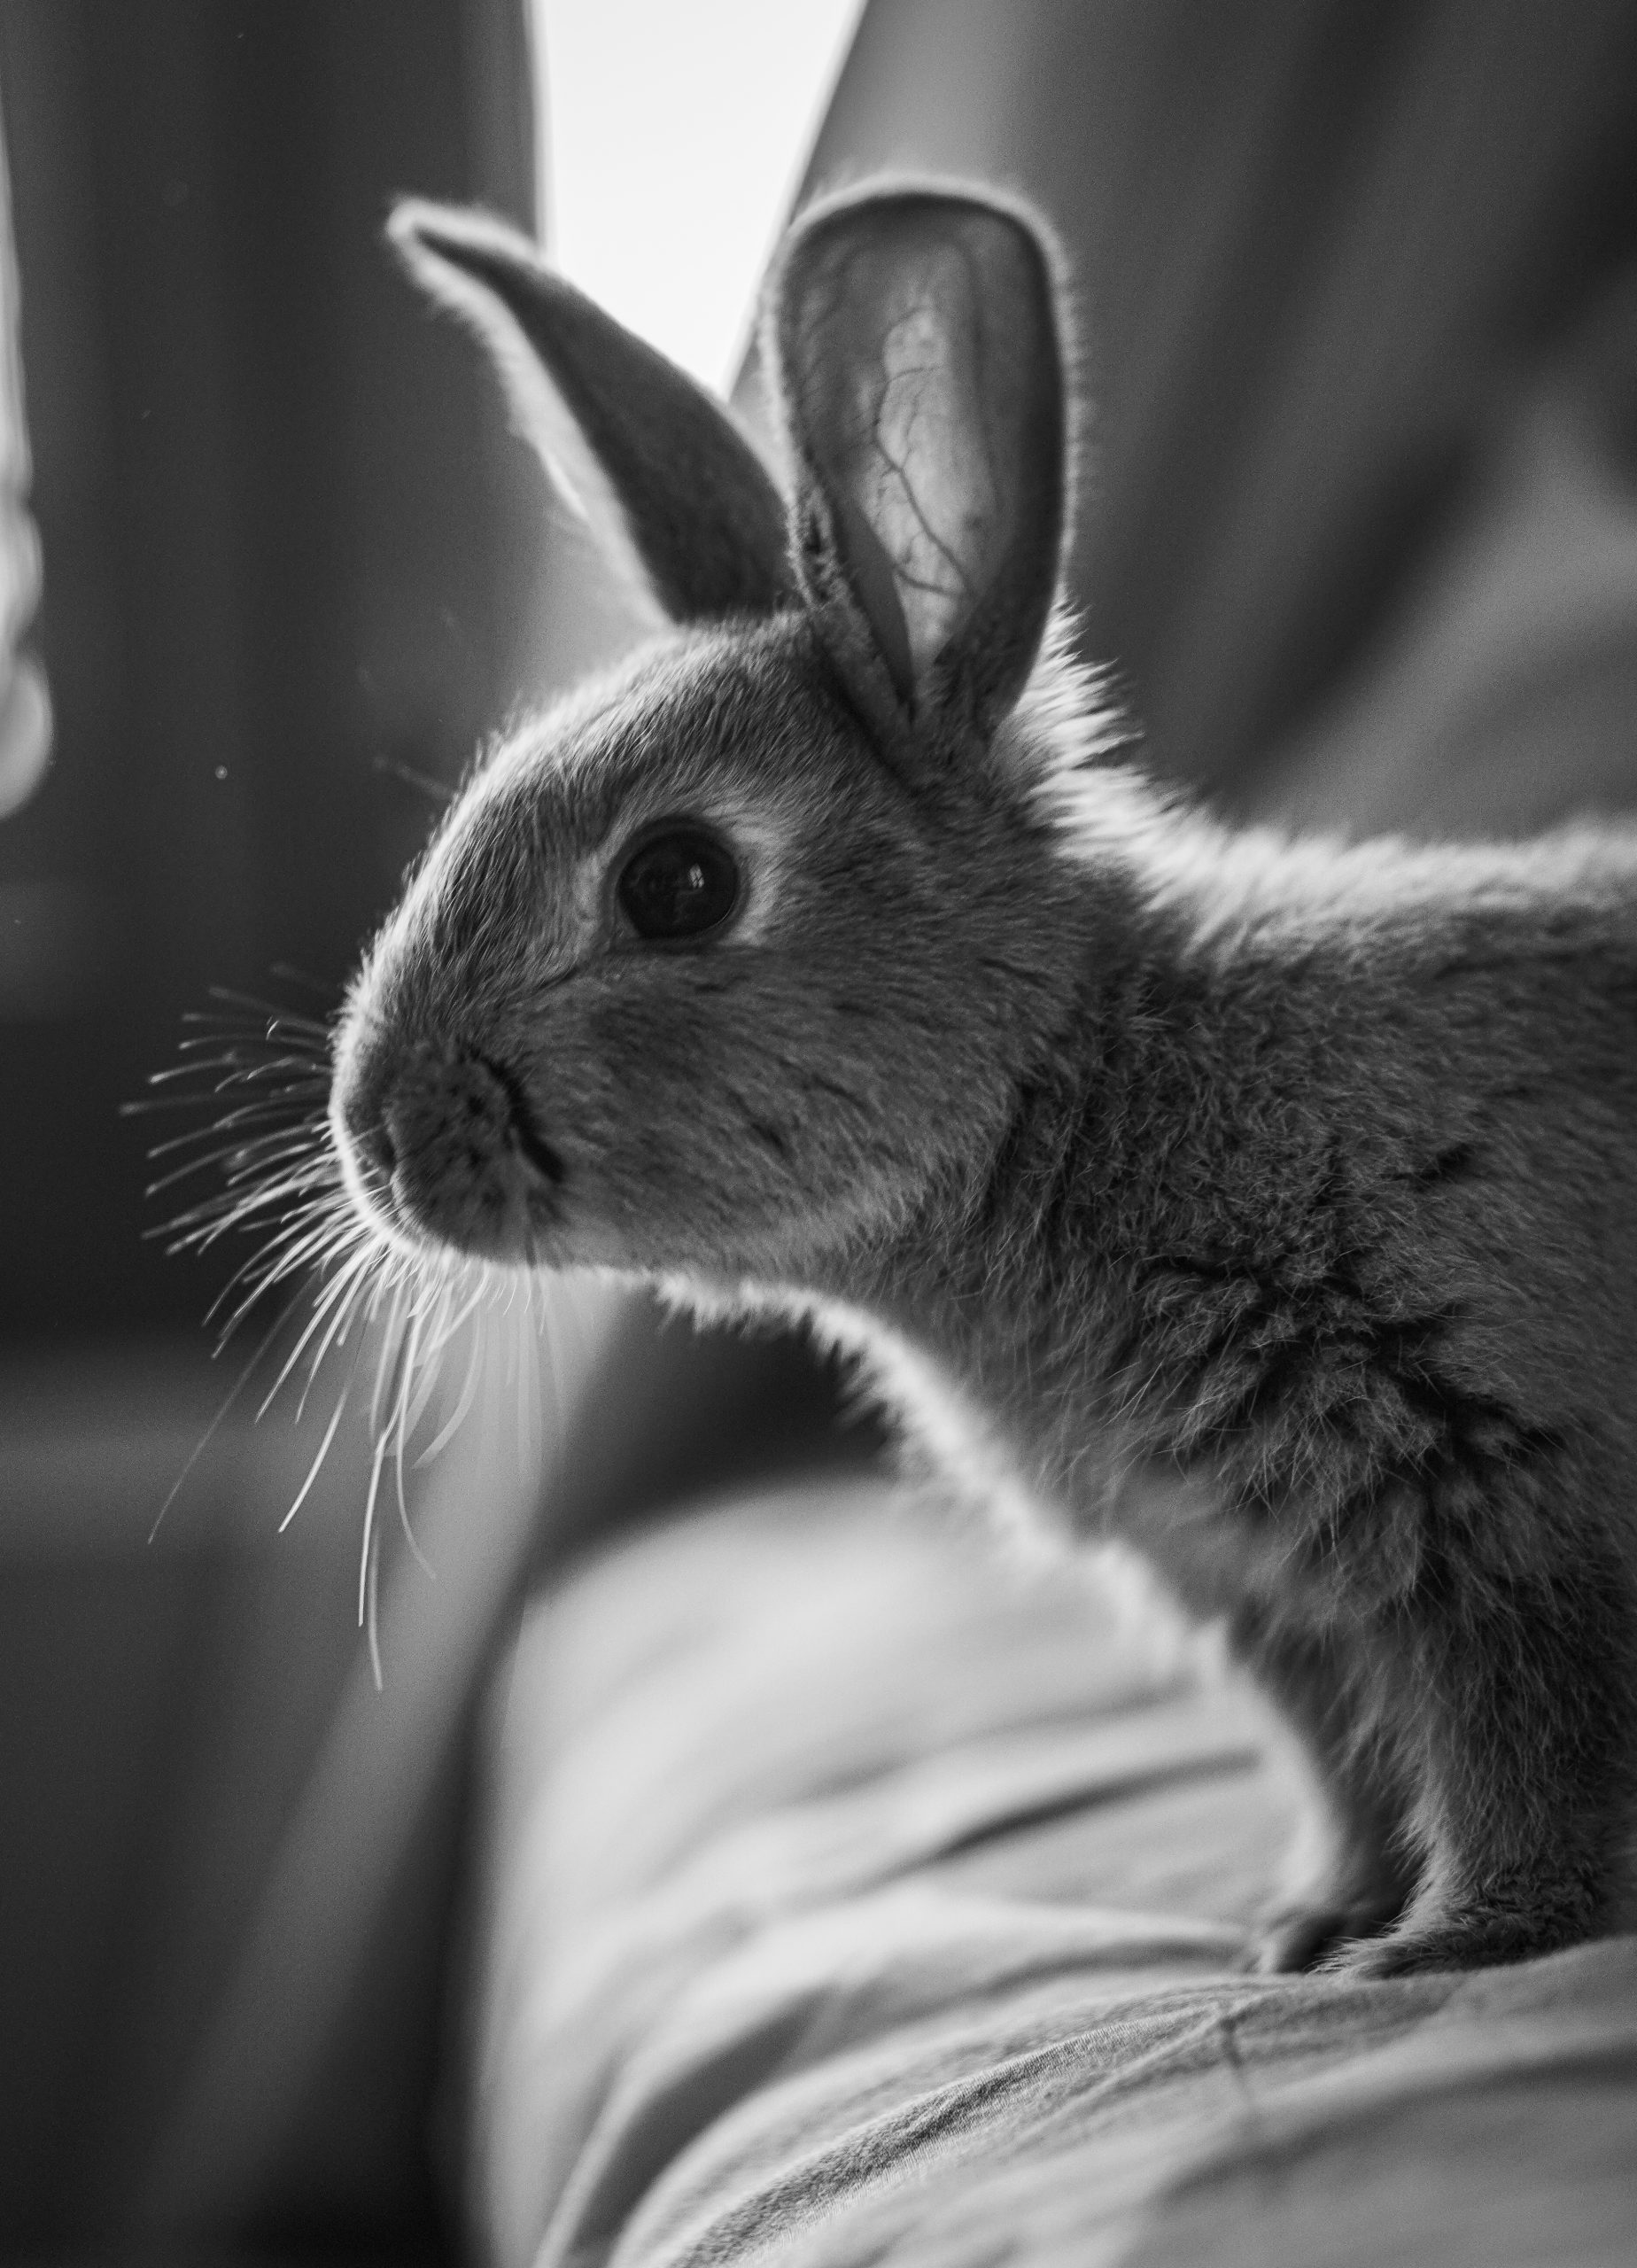 Rabbit on the bed